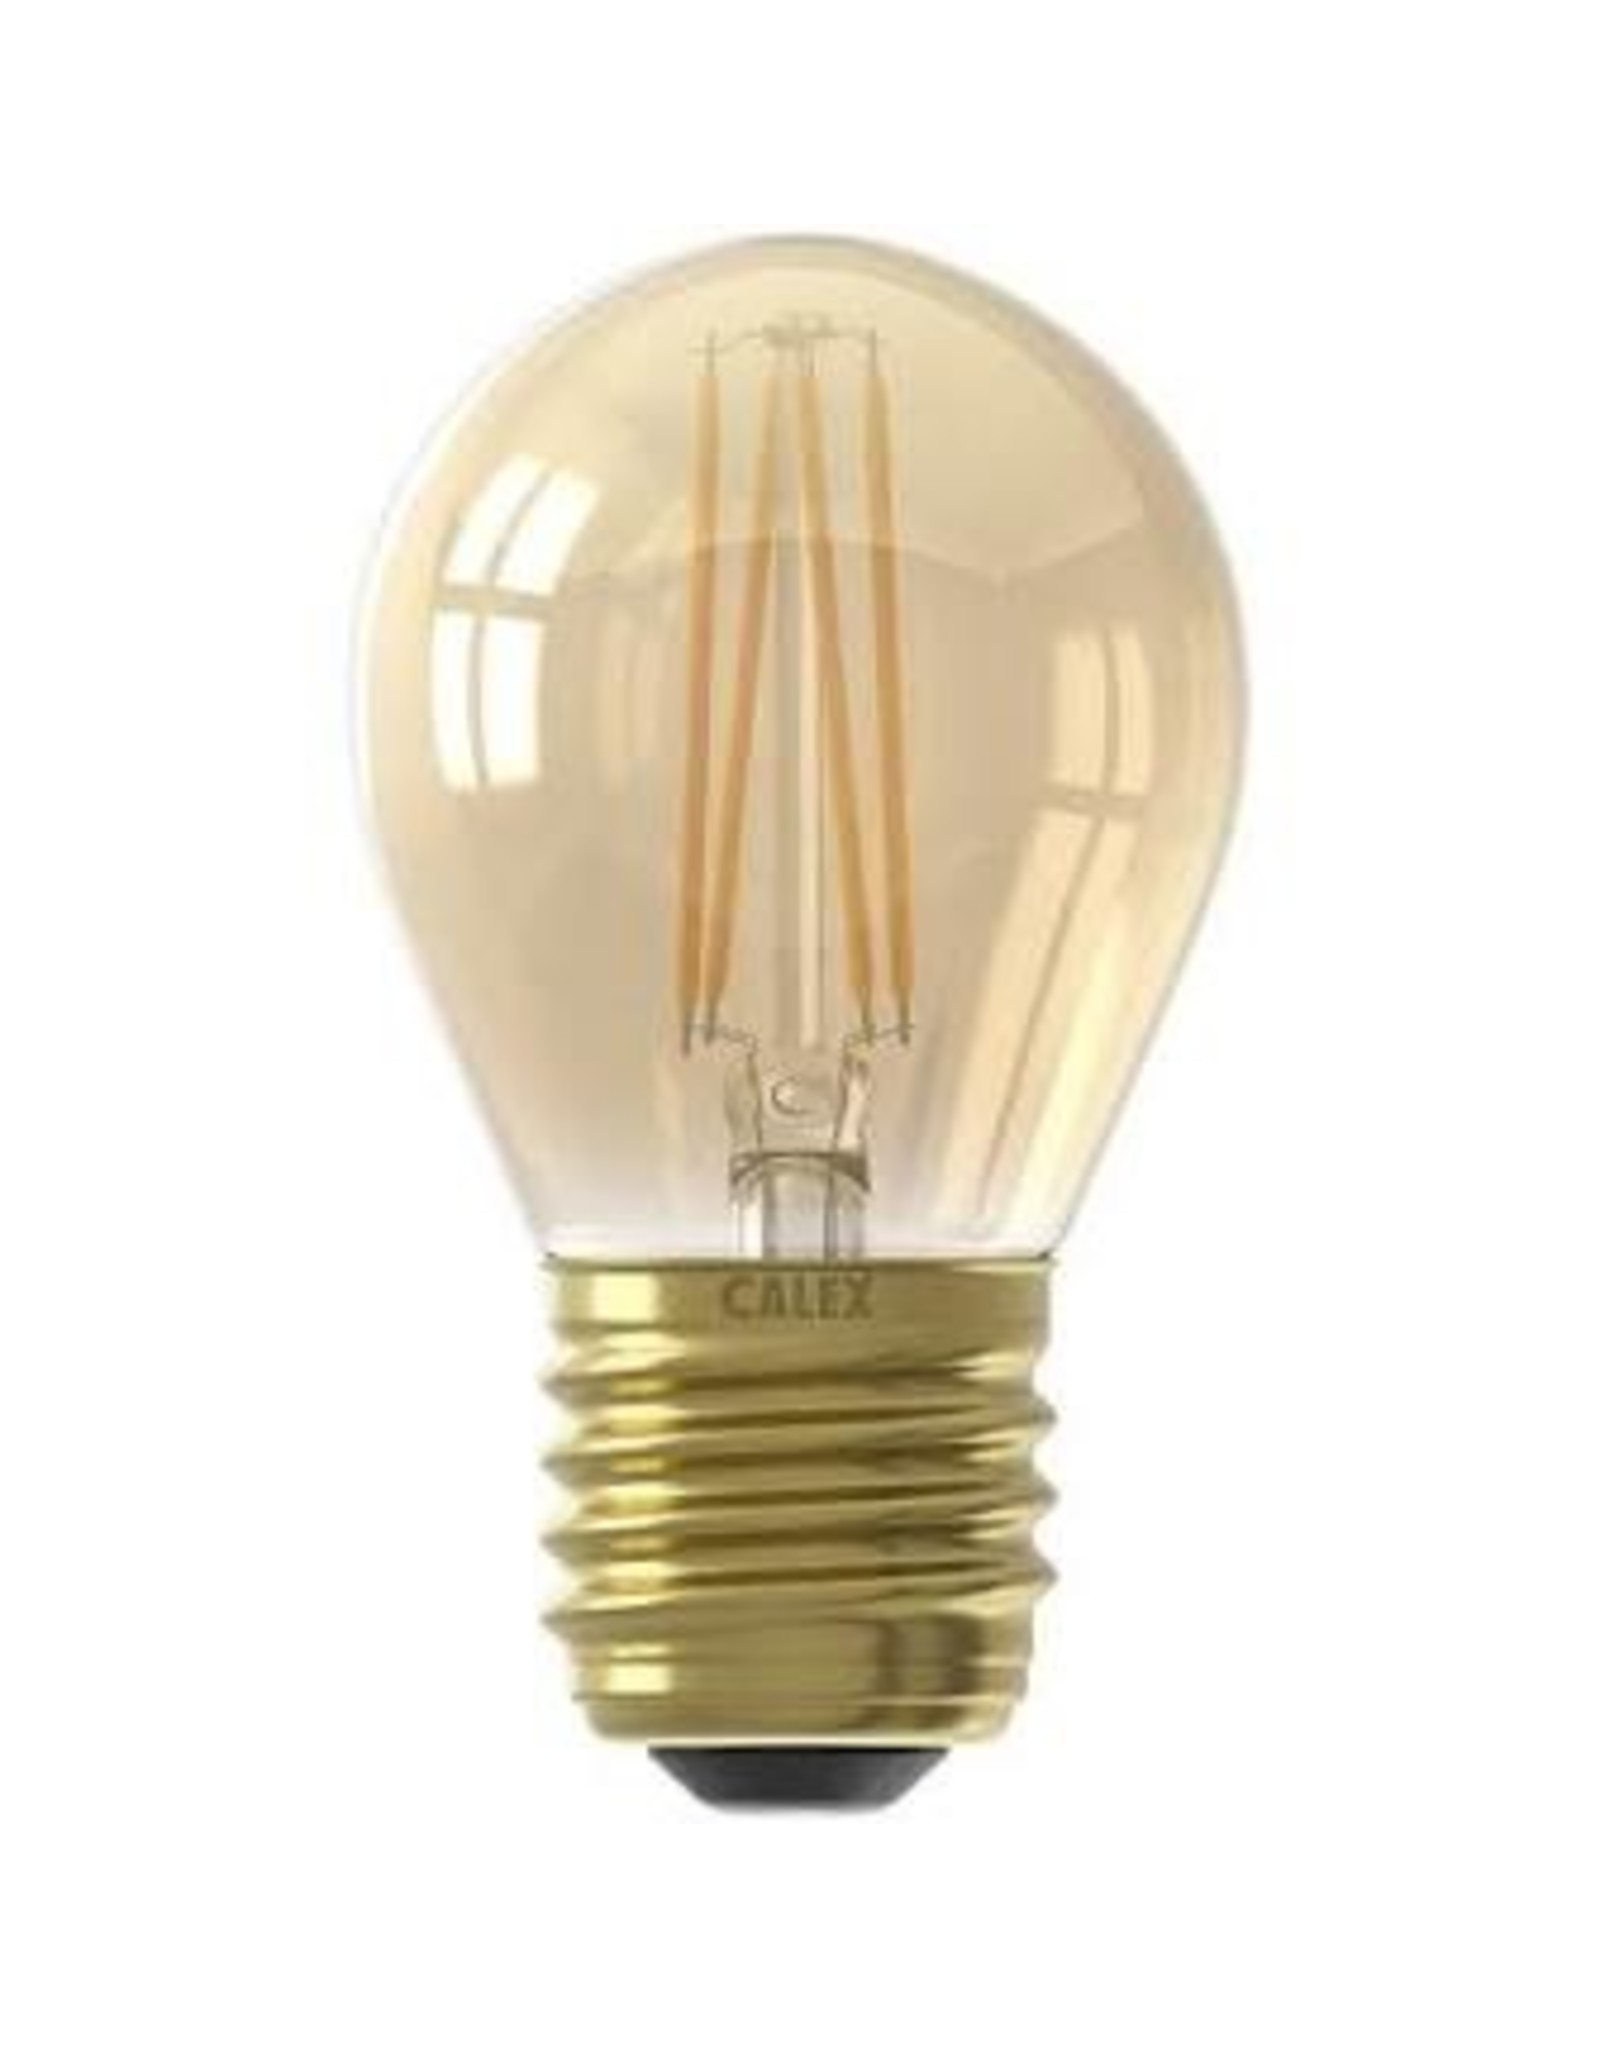 Calex LED Full Glass Filament Ball-lamp 220-240V 3,5W 200lm E27 P45, Gold 2100K CRI80 Dimmable, energy label A+